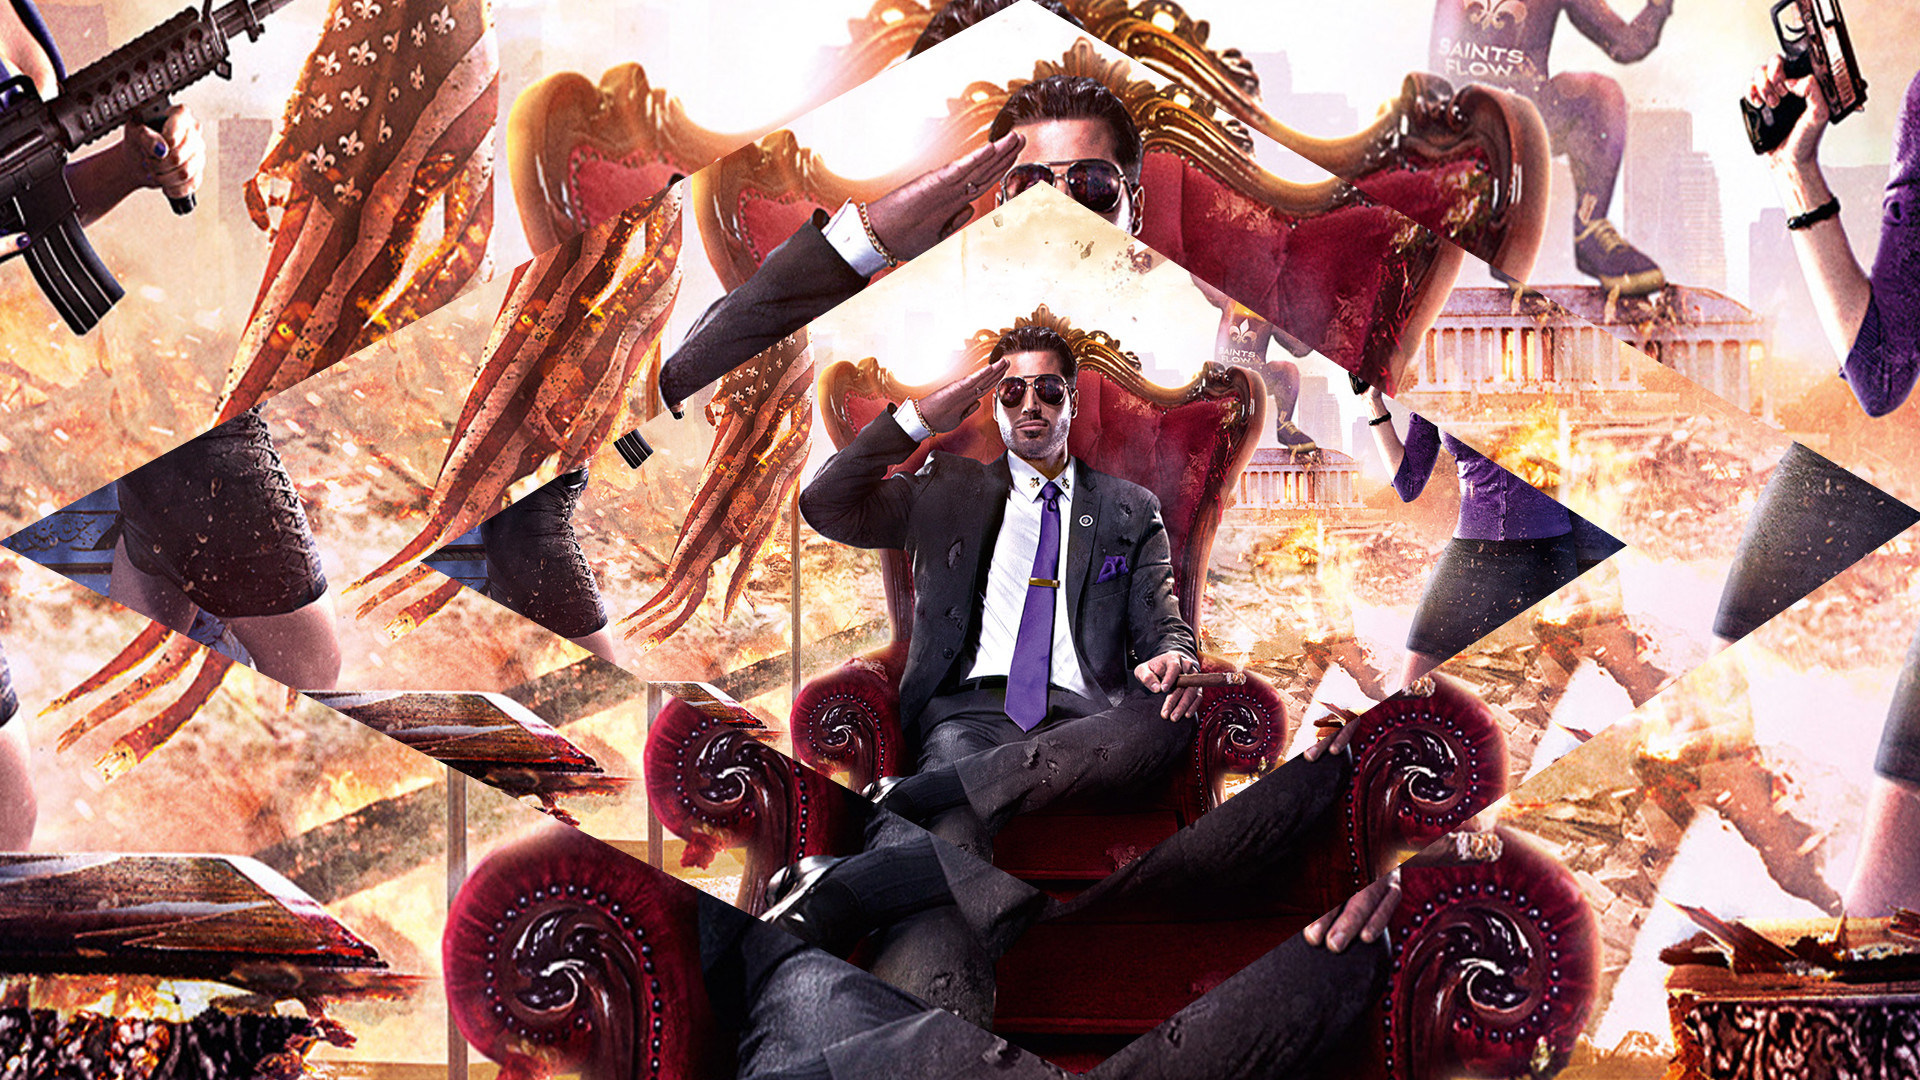 1920x1080 Saints Row IV Wallpaper by dinamito3000 Saints Row IV Wallpaper by  dinamito3000